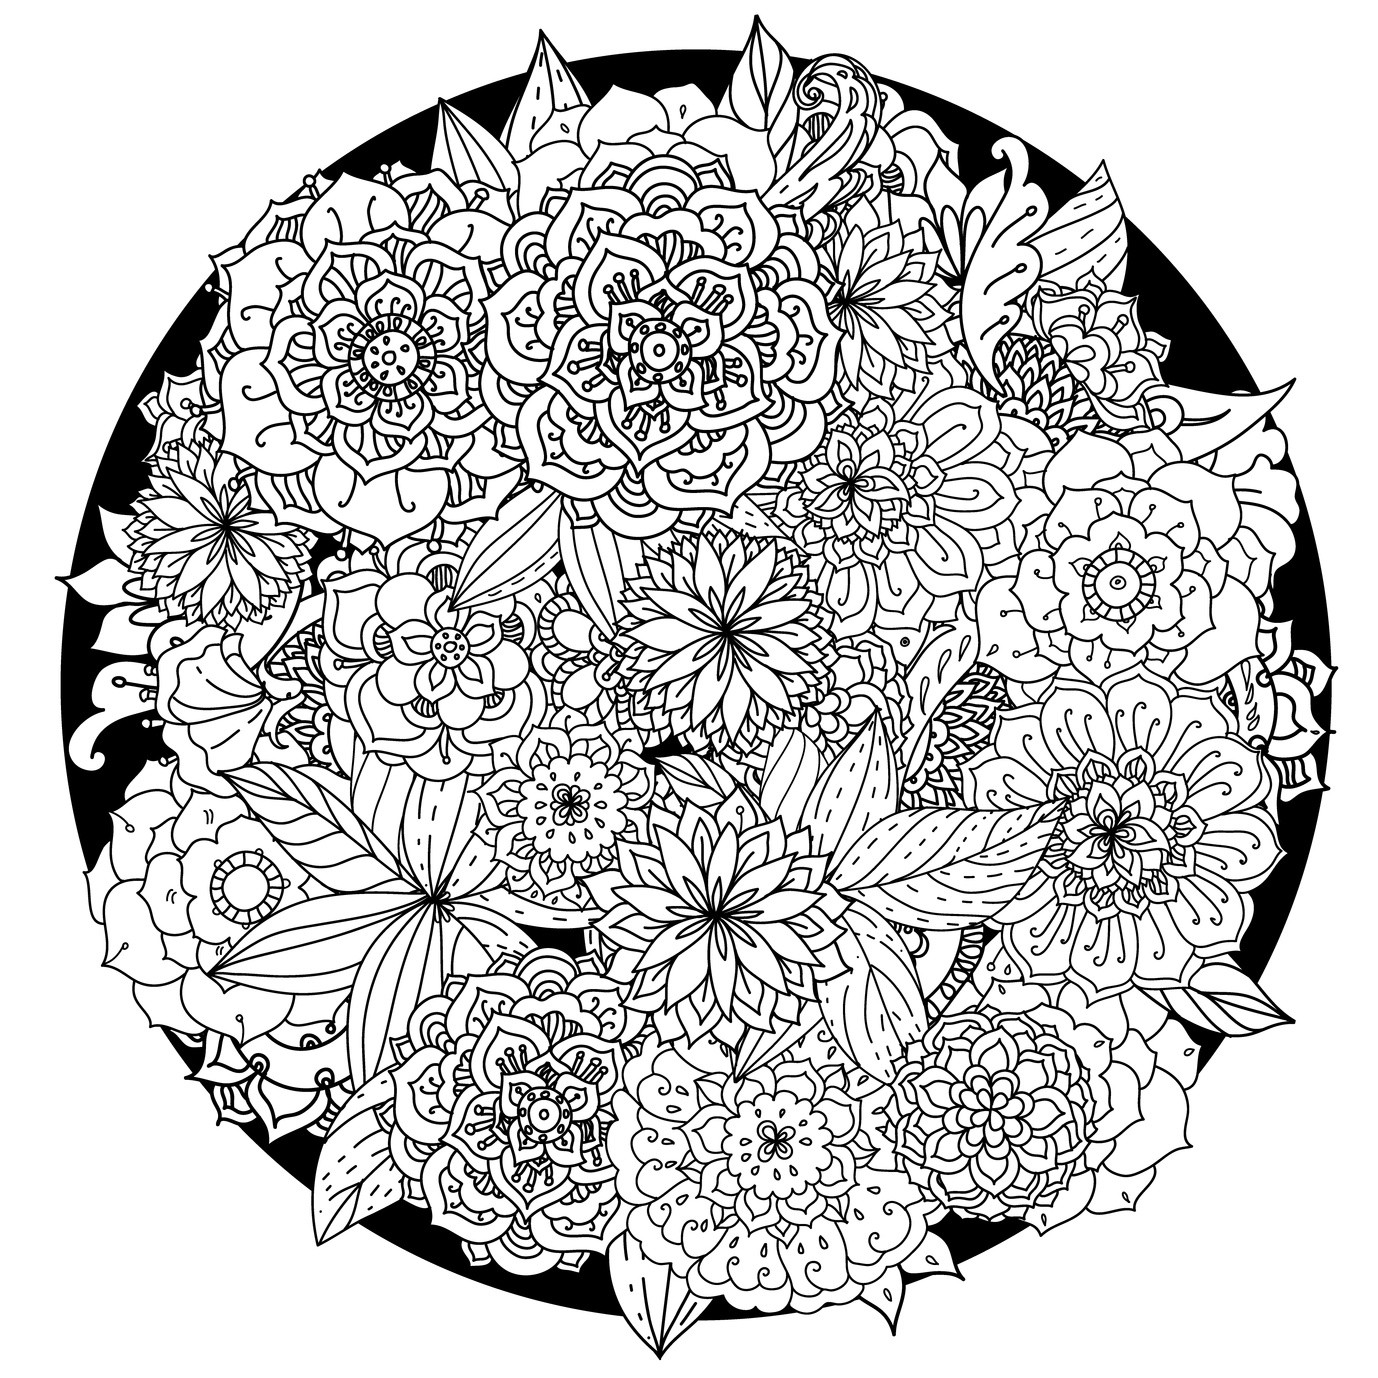 Free Printable Mandala Coloring Pages For Adults  Flower Mandala Coloring Pages coloringsuite